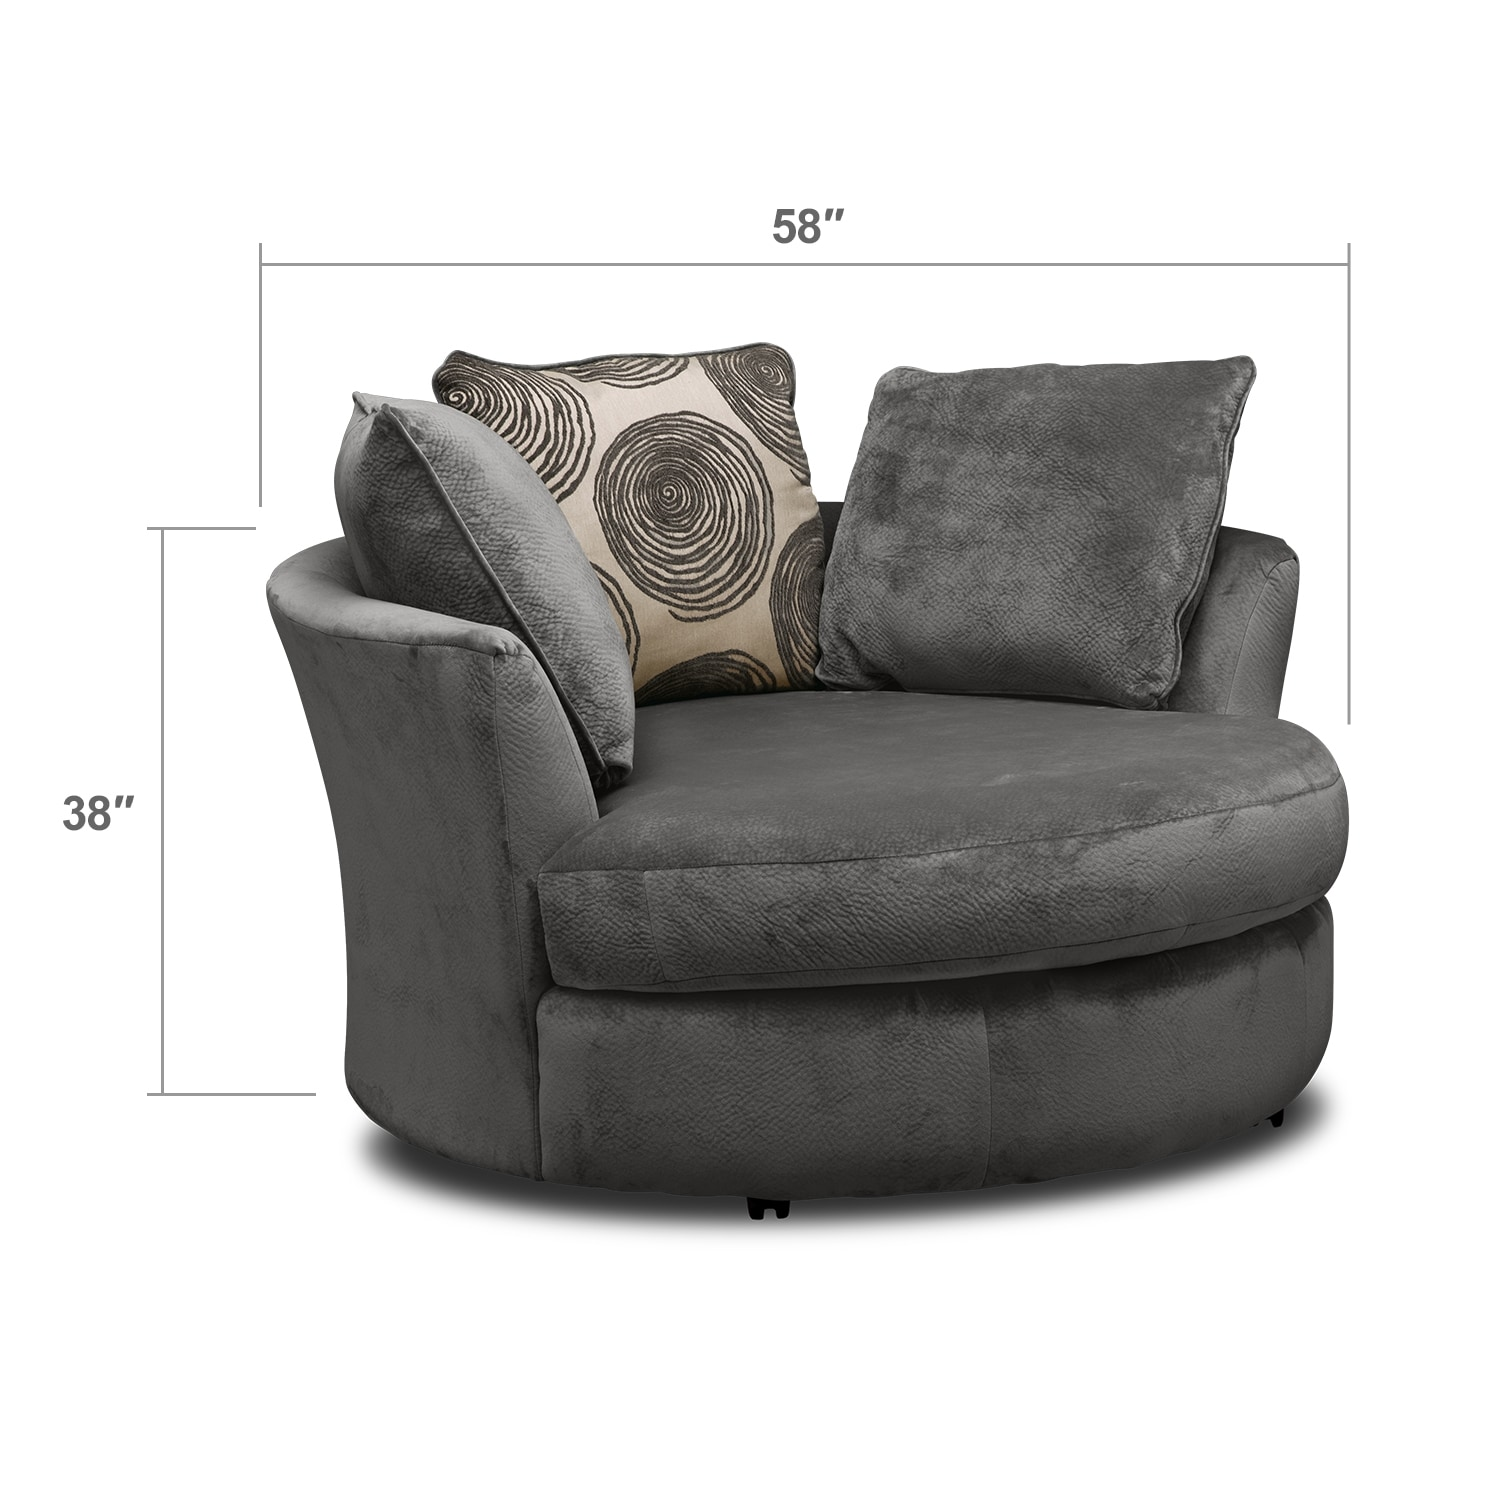 Living Room Furniture - Cordelle Swivel Chair - Gray